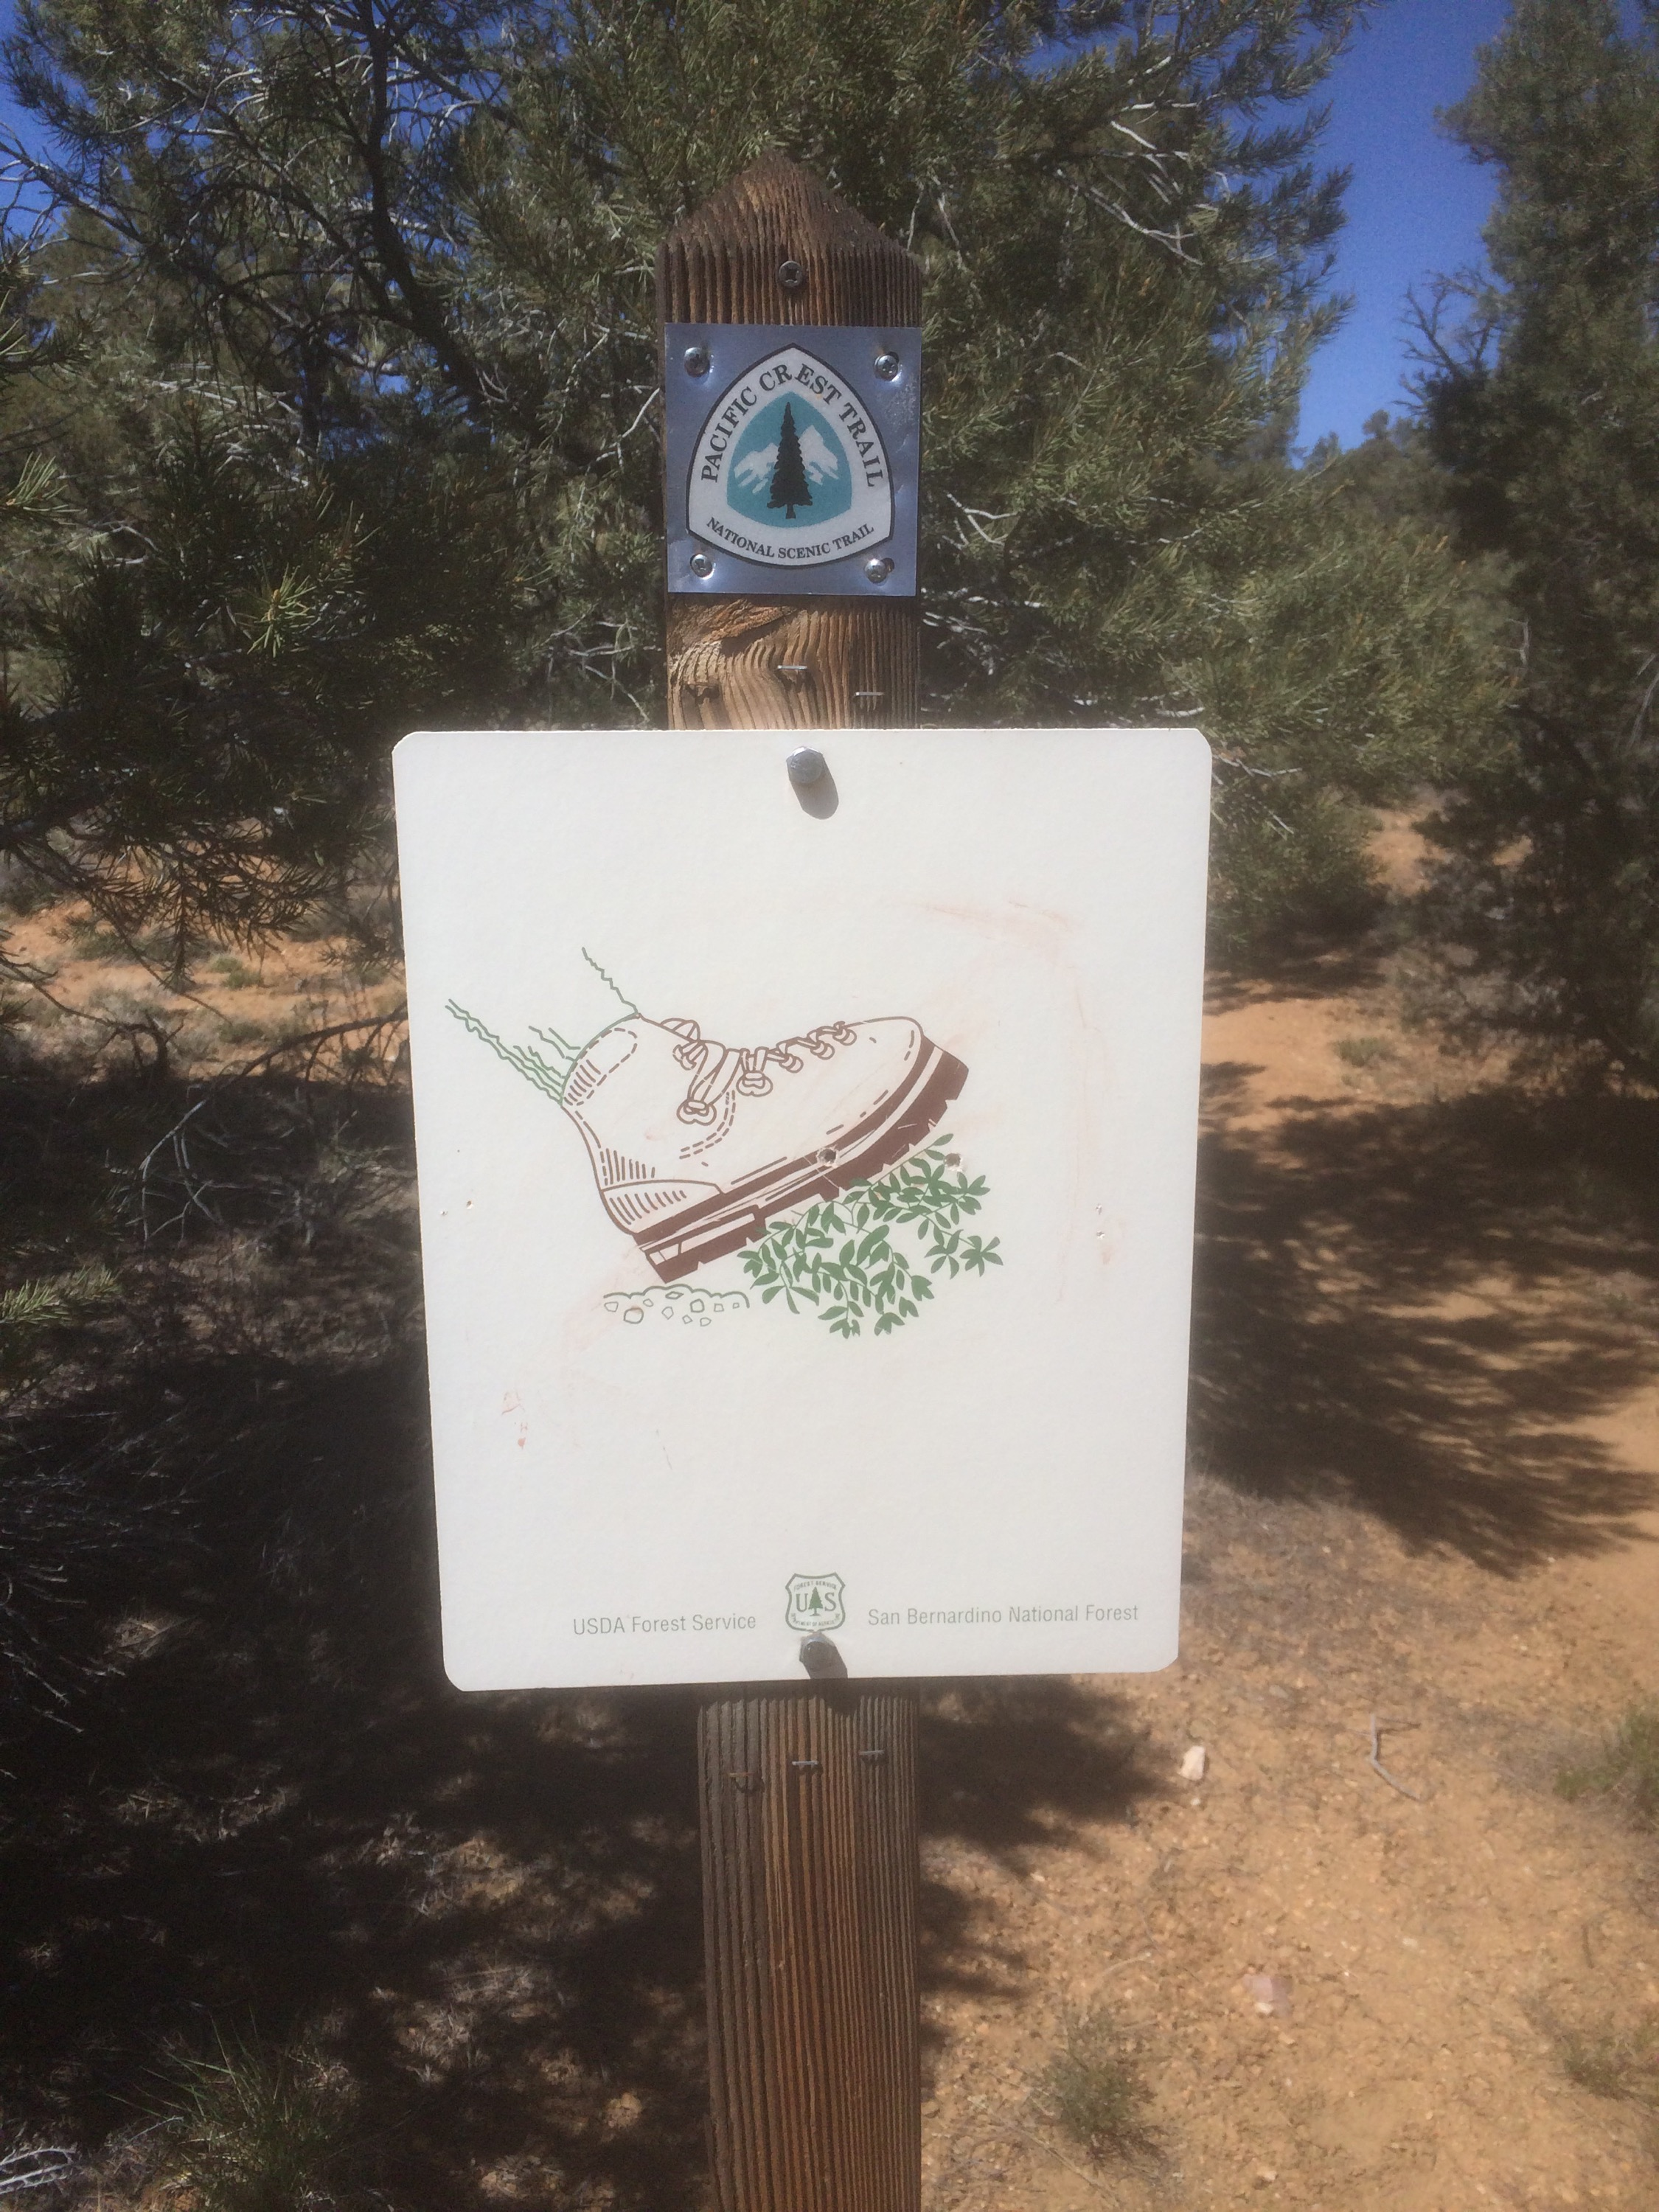 We saw this sign on the trail today, not really sure what it meant...